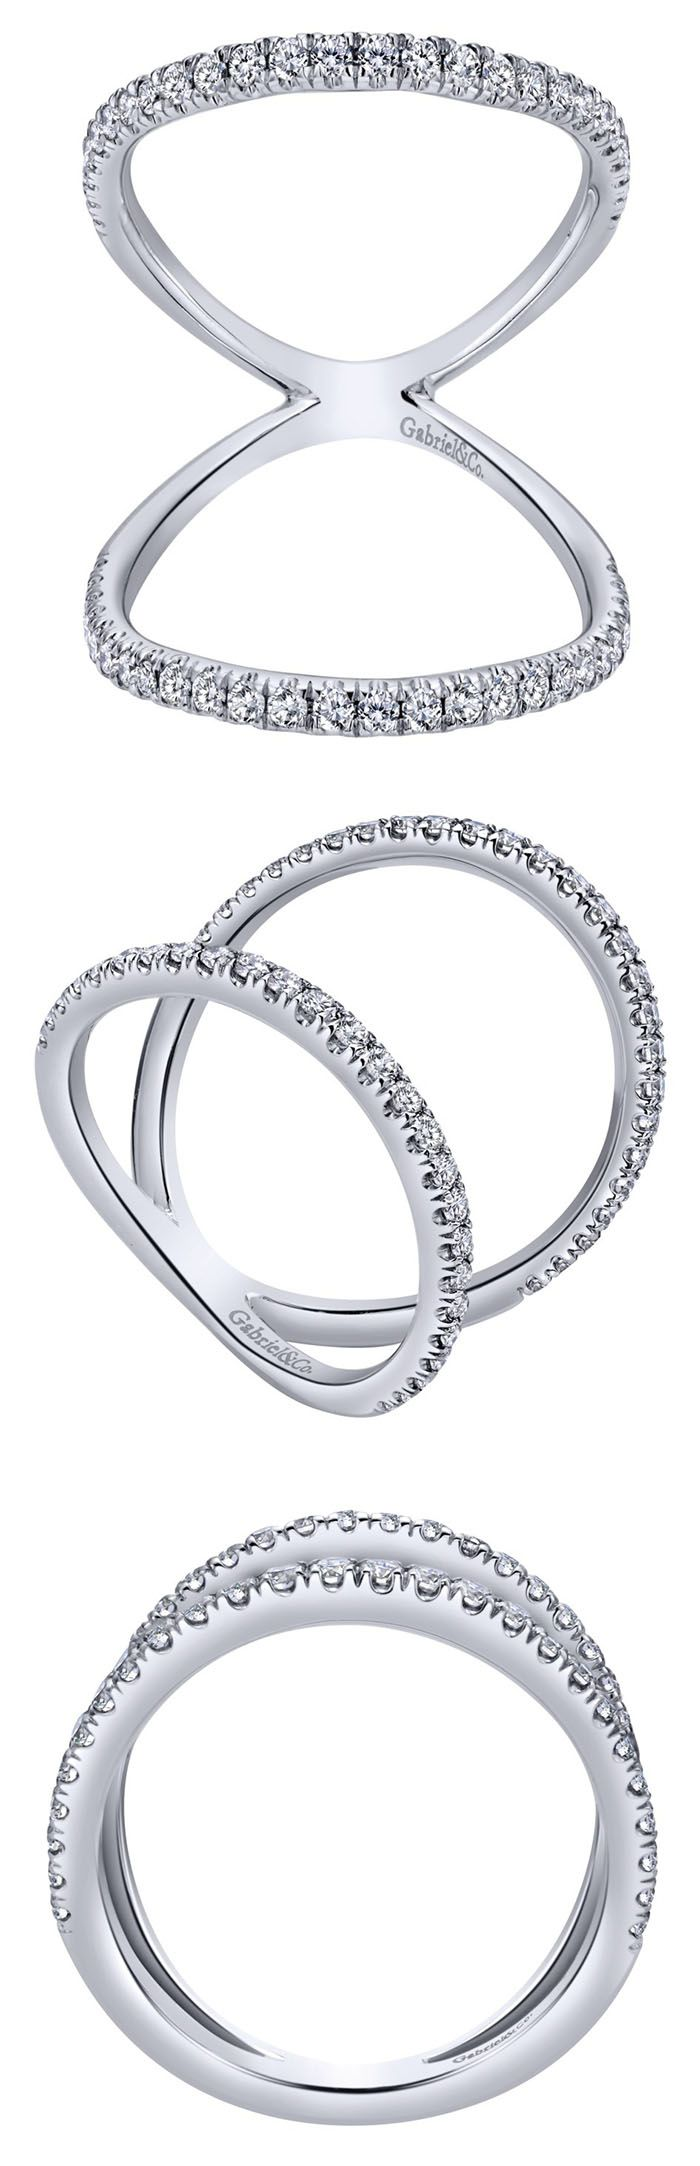 A simple but intricate 14k White Gold Diamond Ring from Gabriel & Co. We love the style of this daring designed ring and looks absolutely stunning on! Find your local retailer and more of our daring designs on our website www.gabrielny.com